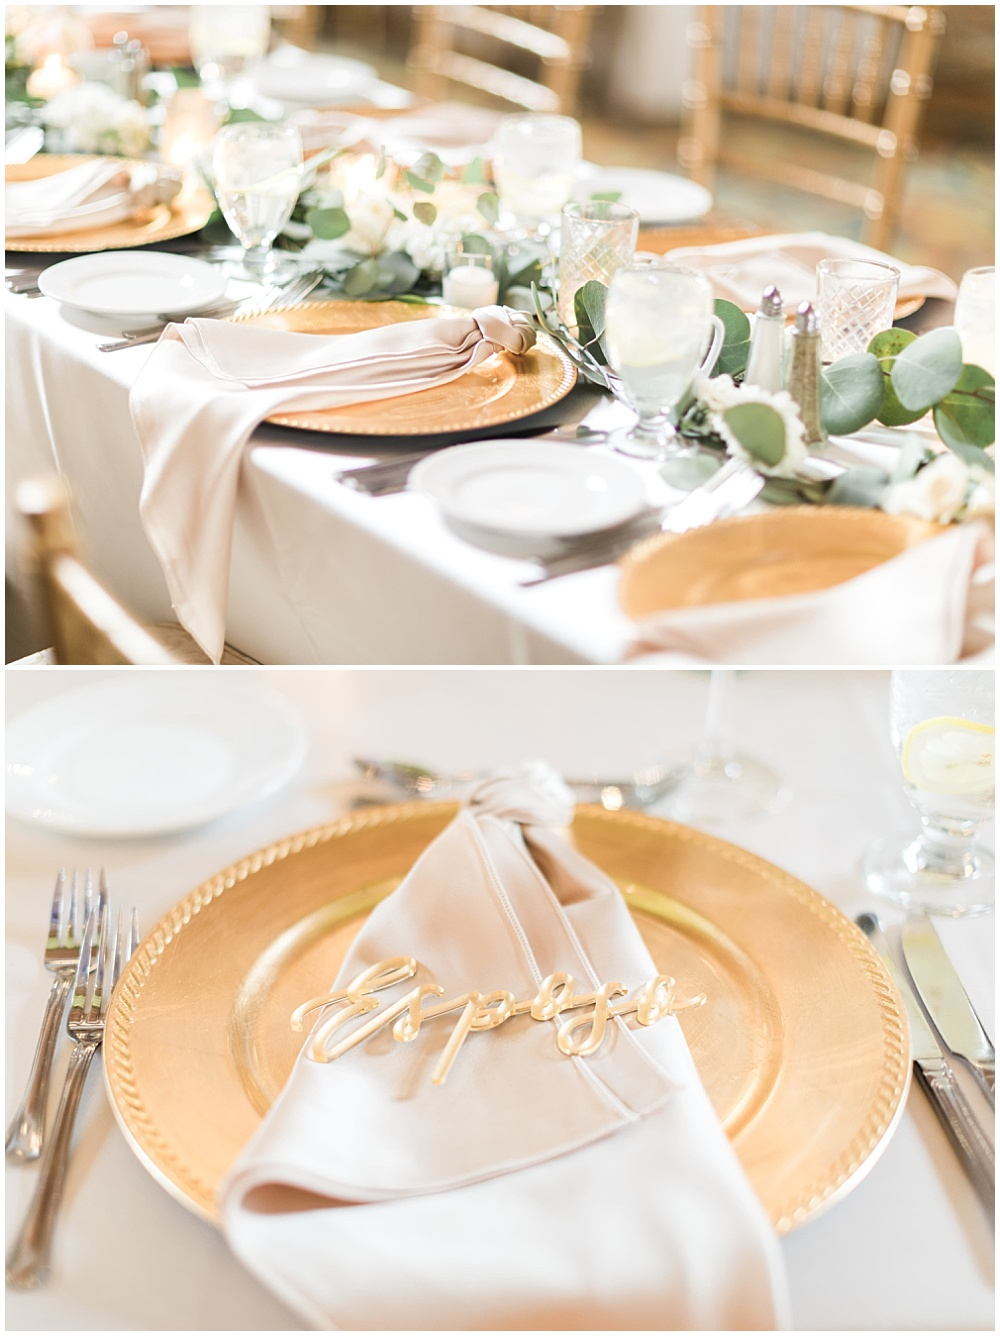 blush rose-knotted napkins; esposa laser cut placecards; bride and groom placecards; draped greenery; Mexican inspired gold & floral wedding; Crowne Plaza Indianapolis Downtown Union Station; neutral floral and greenery wedding|Cory + Jackie and Jessica Dum Wedding Coordination